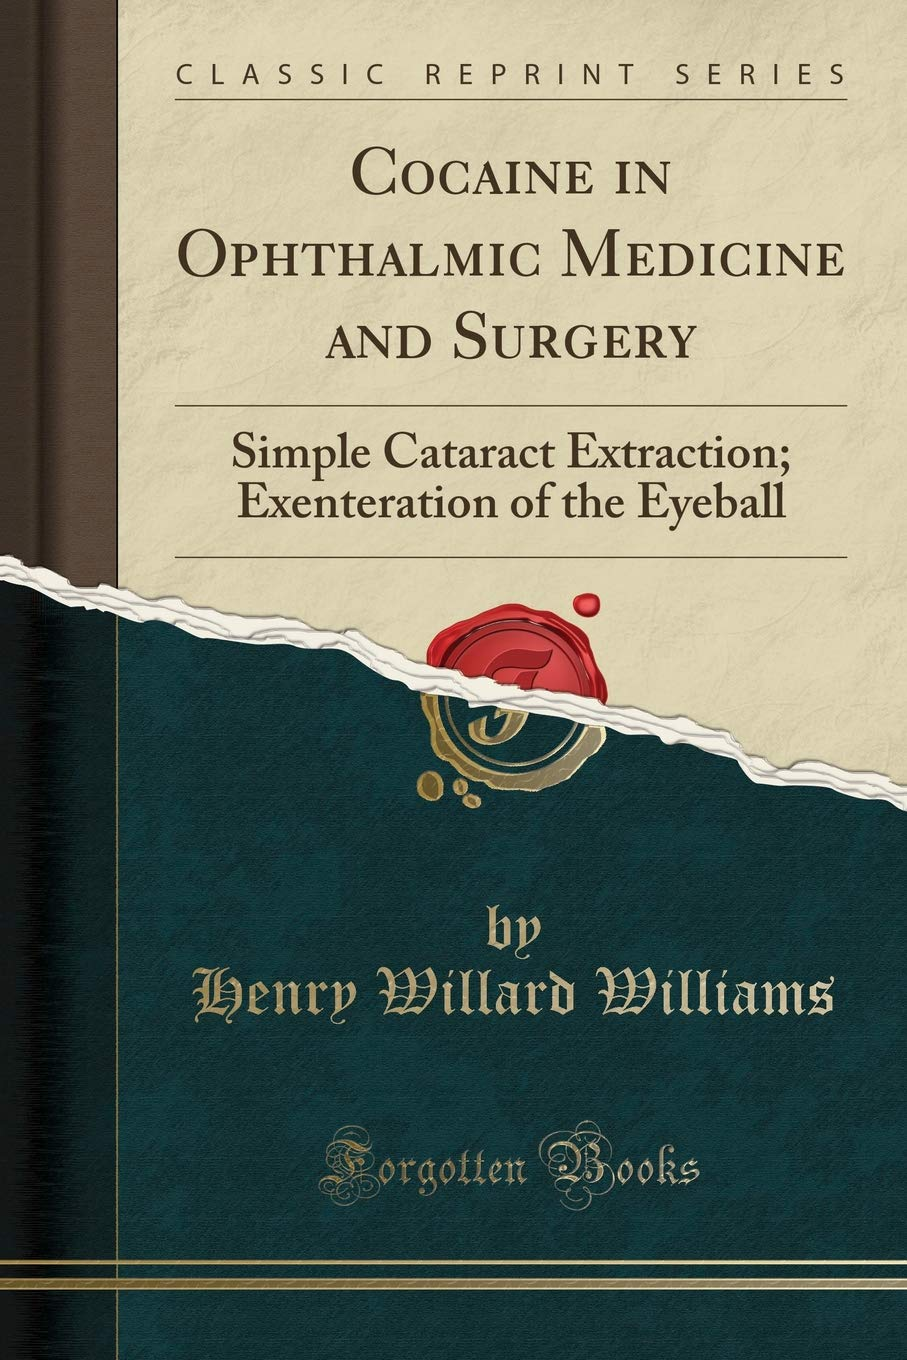 Cocaine in Ophthalmic Medicine and Surgery: Simple Cataract Extraction; Exenteration of the Eyeball (Classic Reprint)